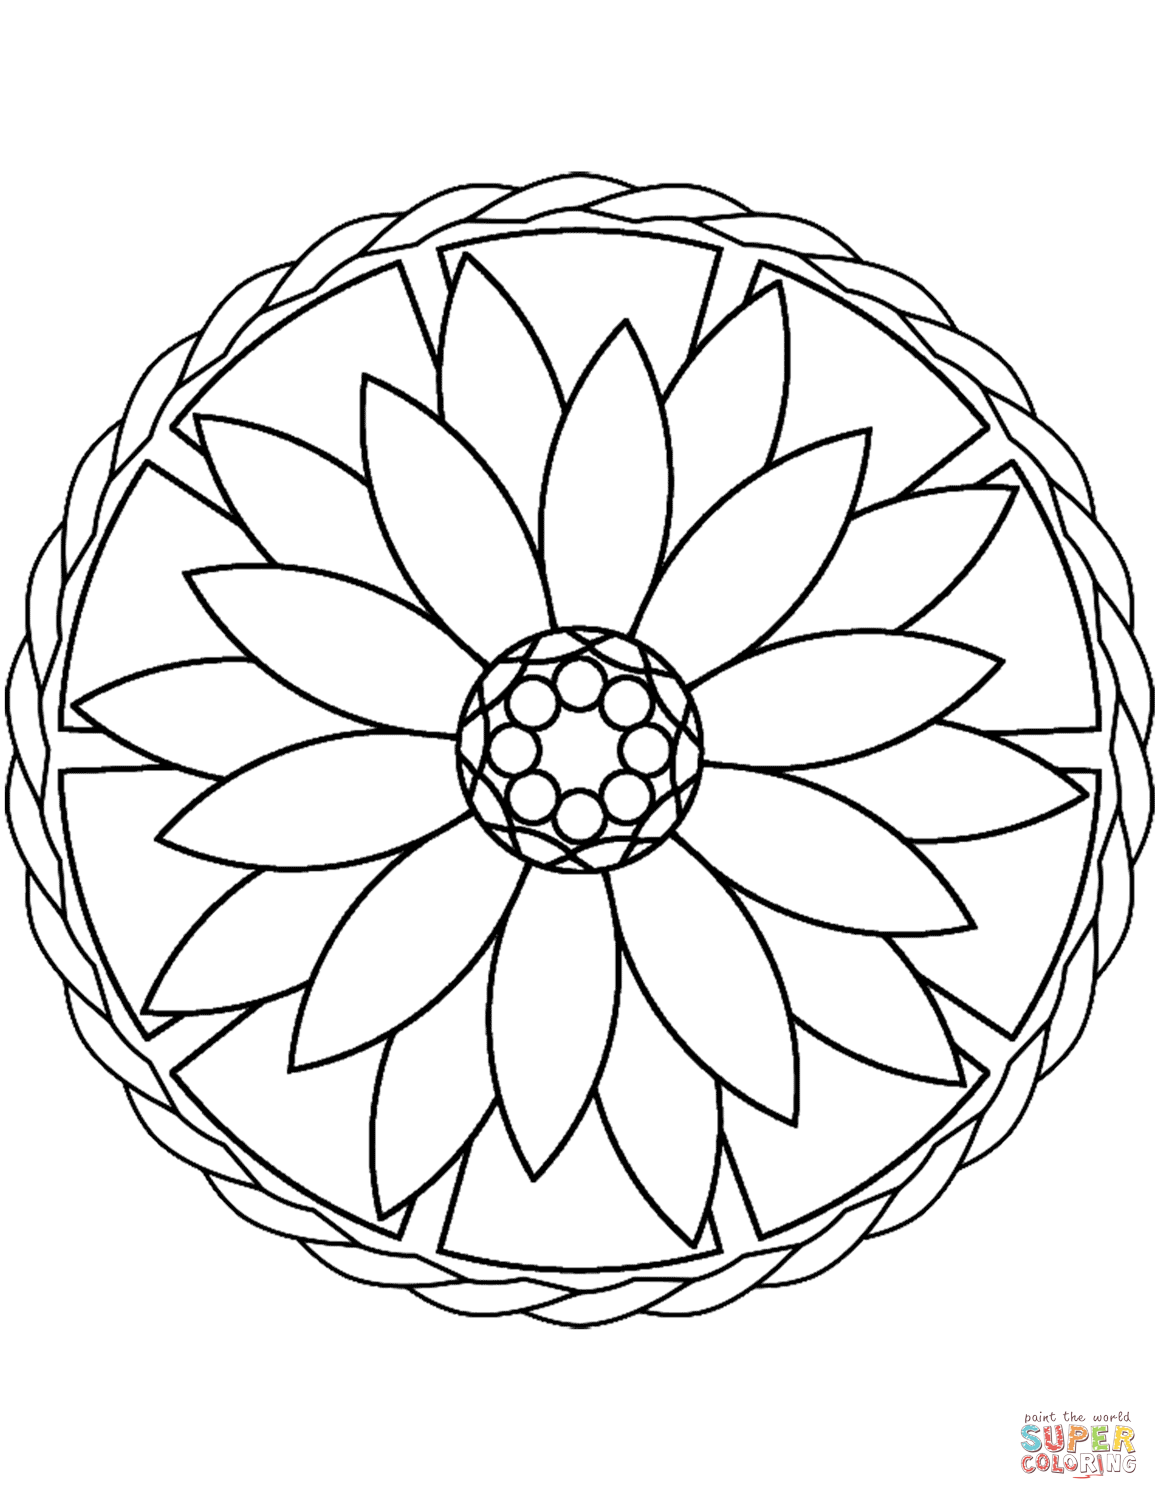 Simple Mandala With Flower Coloring Page Free Printable Coloring